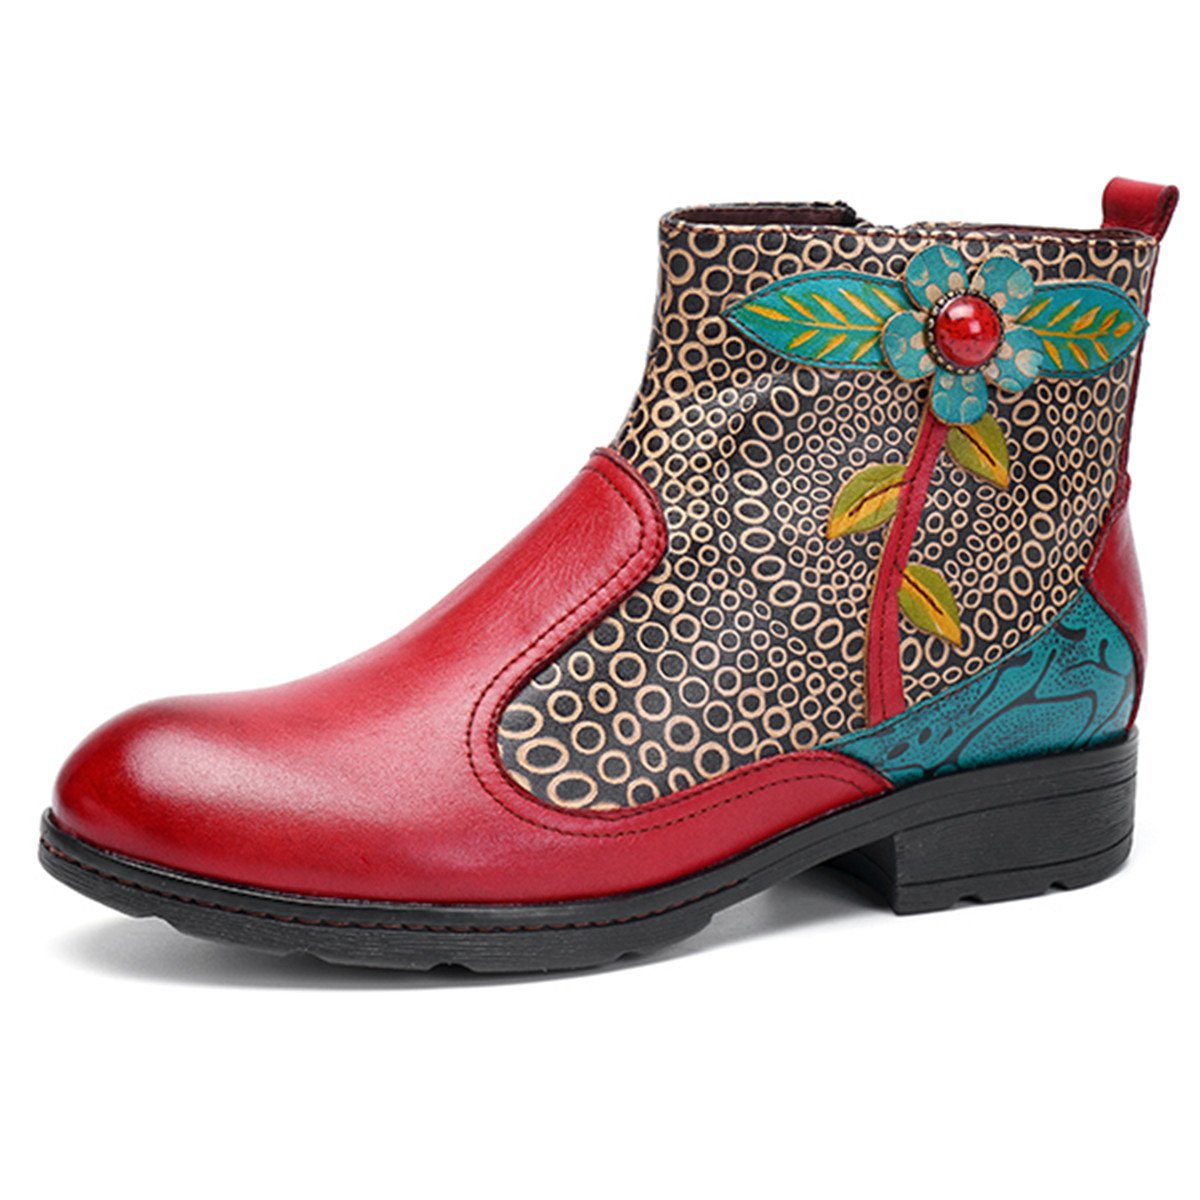 Socofy Bottes Femme, - Bottines en Cuir B006Z7YNCI A Talon Haut Design Boots 2017 Chaussures de Ville Hiver Printemps, Design Original à Style Ethnique - Rouge Marron Bleu Rouge 2 9cb5d8a - therethere.space